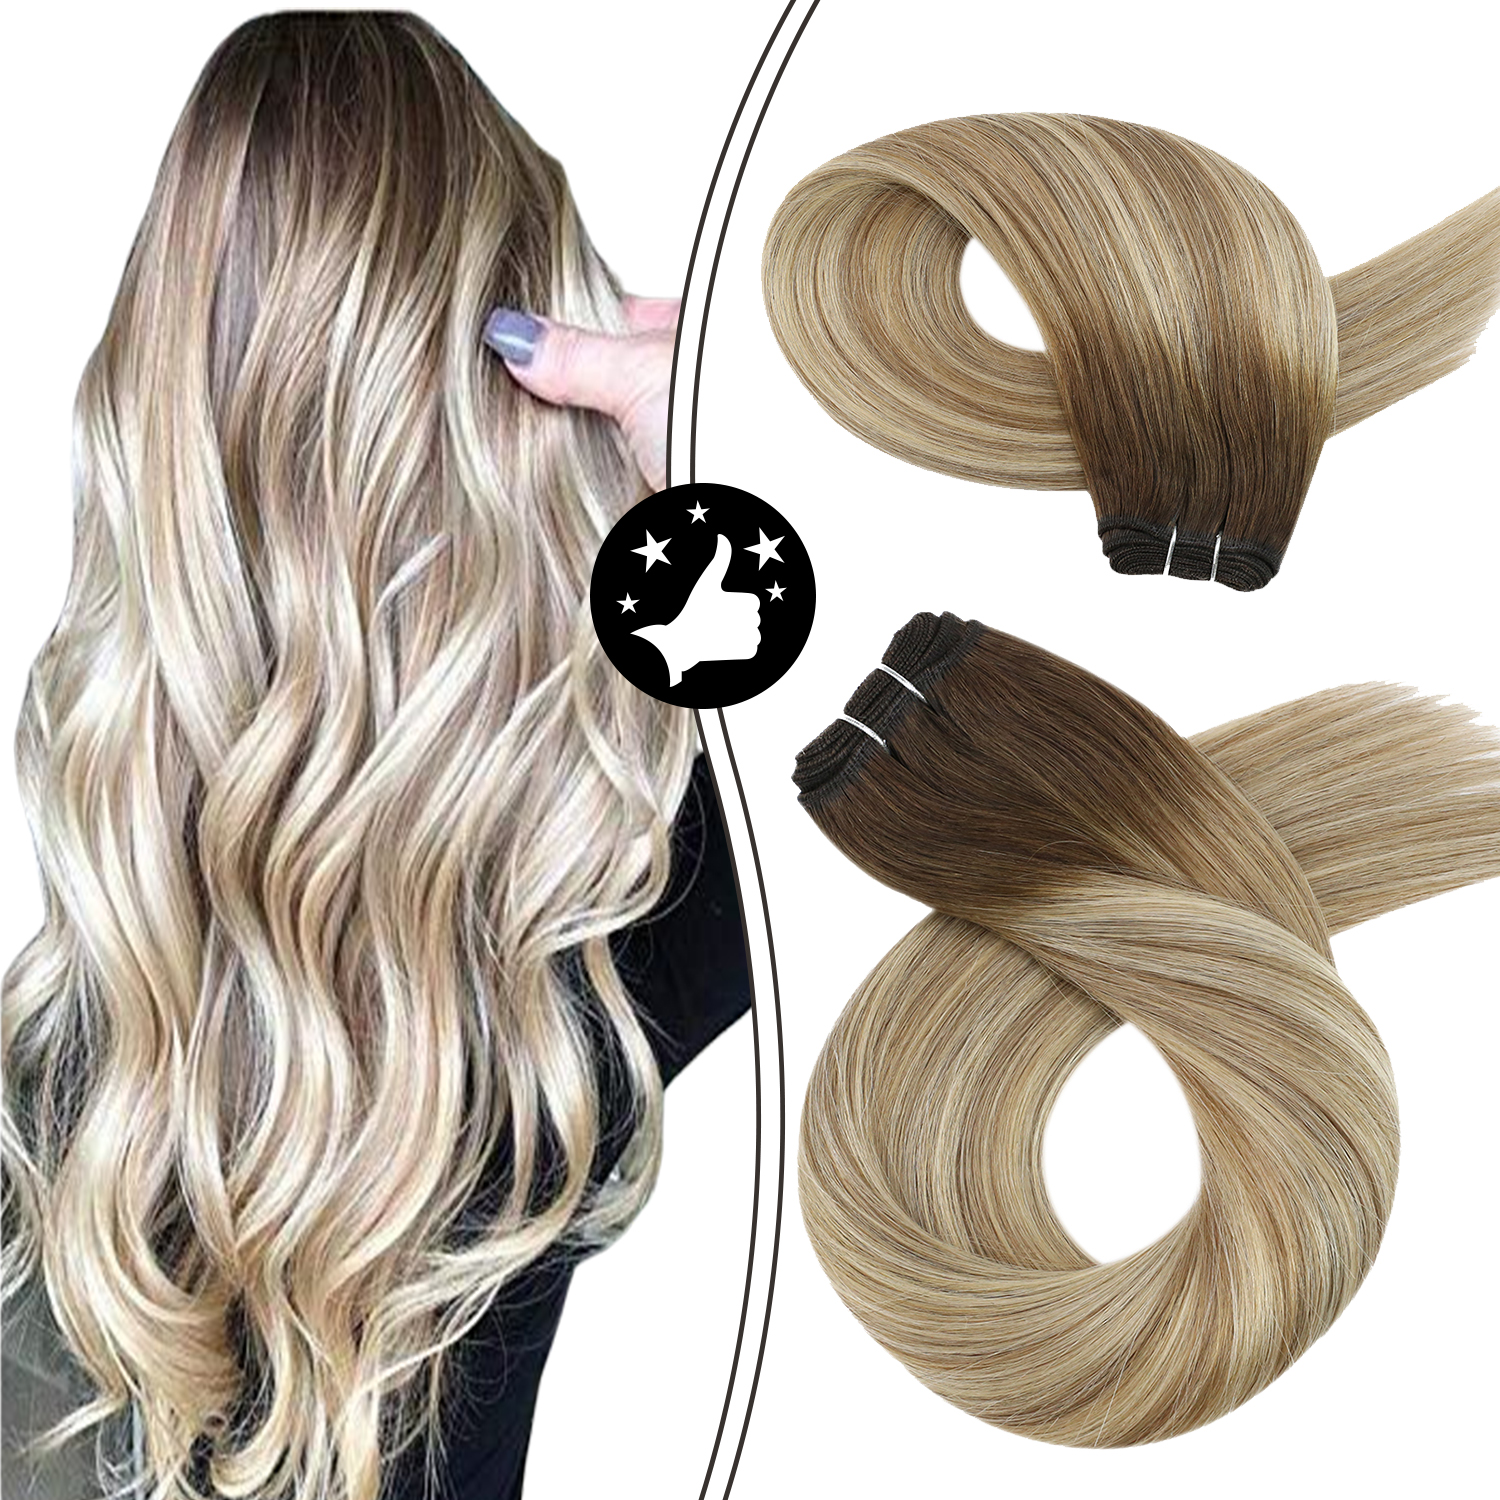 Hair Weft Sew in Extensions #3/8/22 Double Weft Weave in Balayage Ombre 100 Gram Machine Remy Human Hair Bundles Brazilian